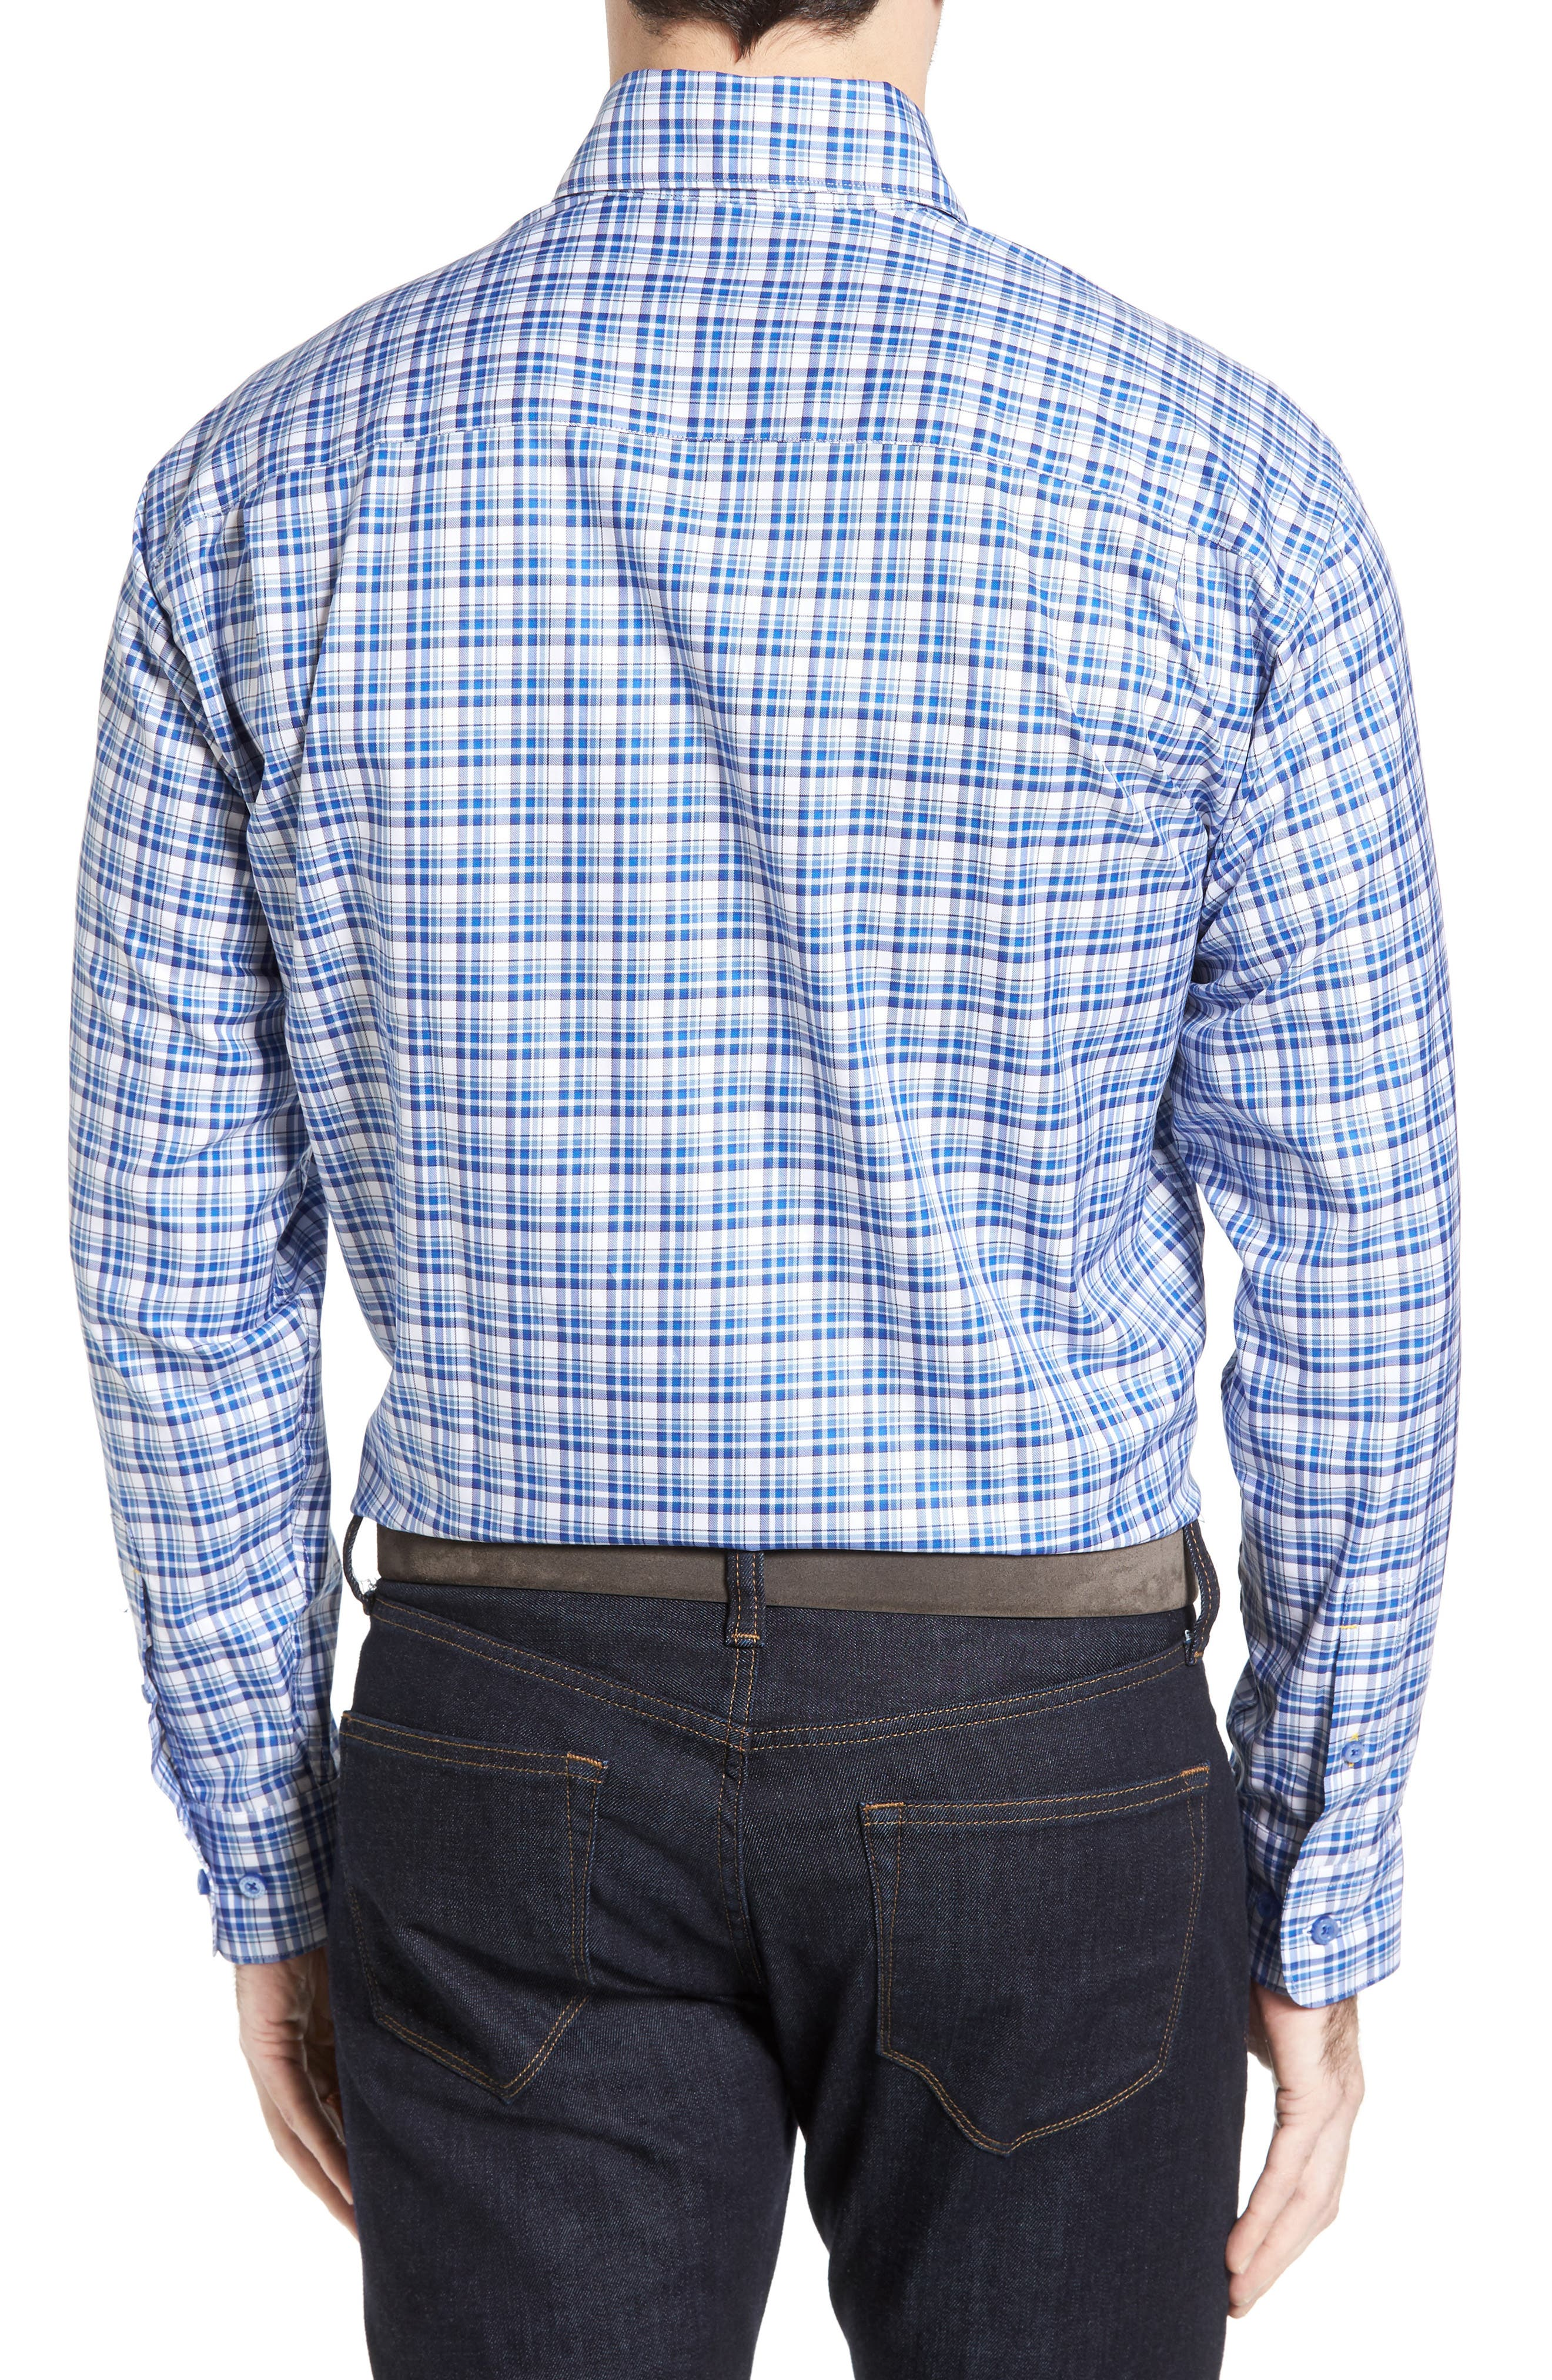 Anderson Classic Fit Plaid Micro Twill Sport Shirt,                             Alternate thumbnail 2, color,                             417